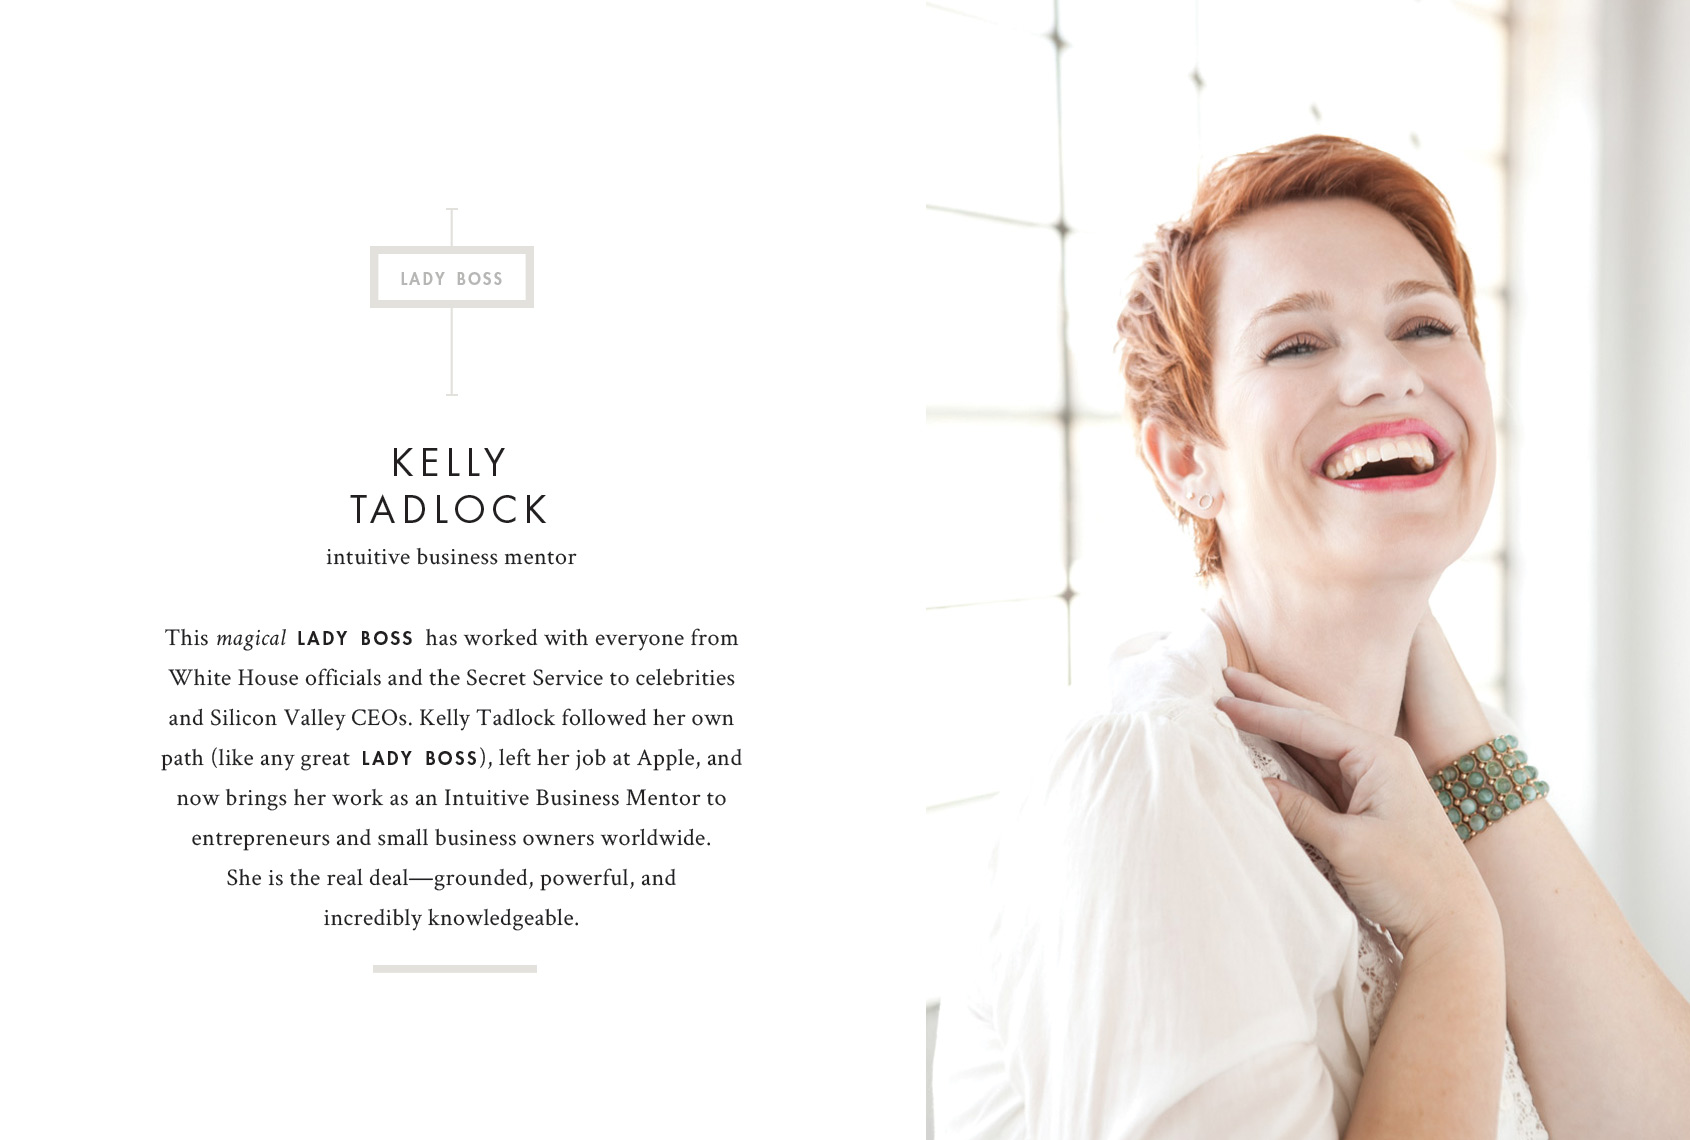 Print - Kelly Tadlock, Intuitive Business Mentor